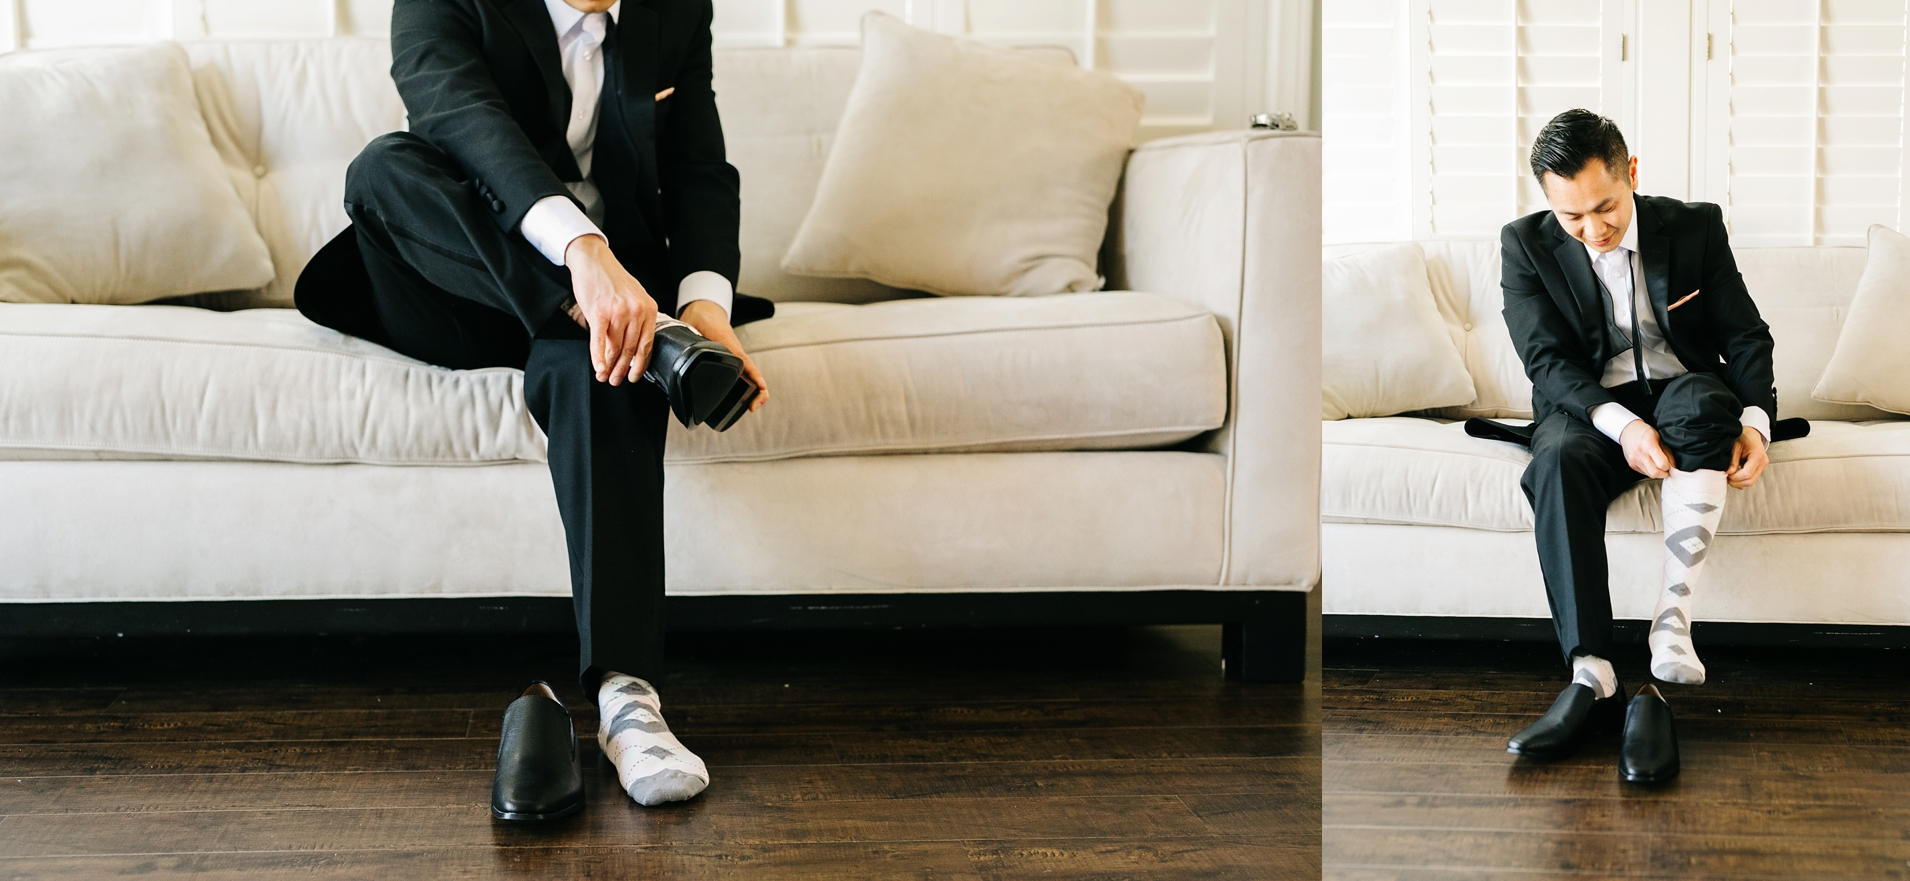 Groom Getting Ready Photos in Orange County, CA - Brittney Hannon Photography